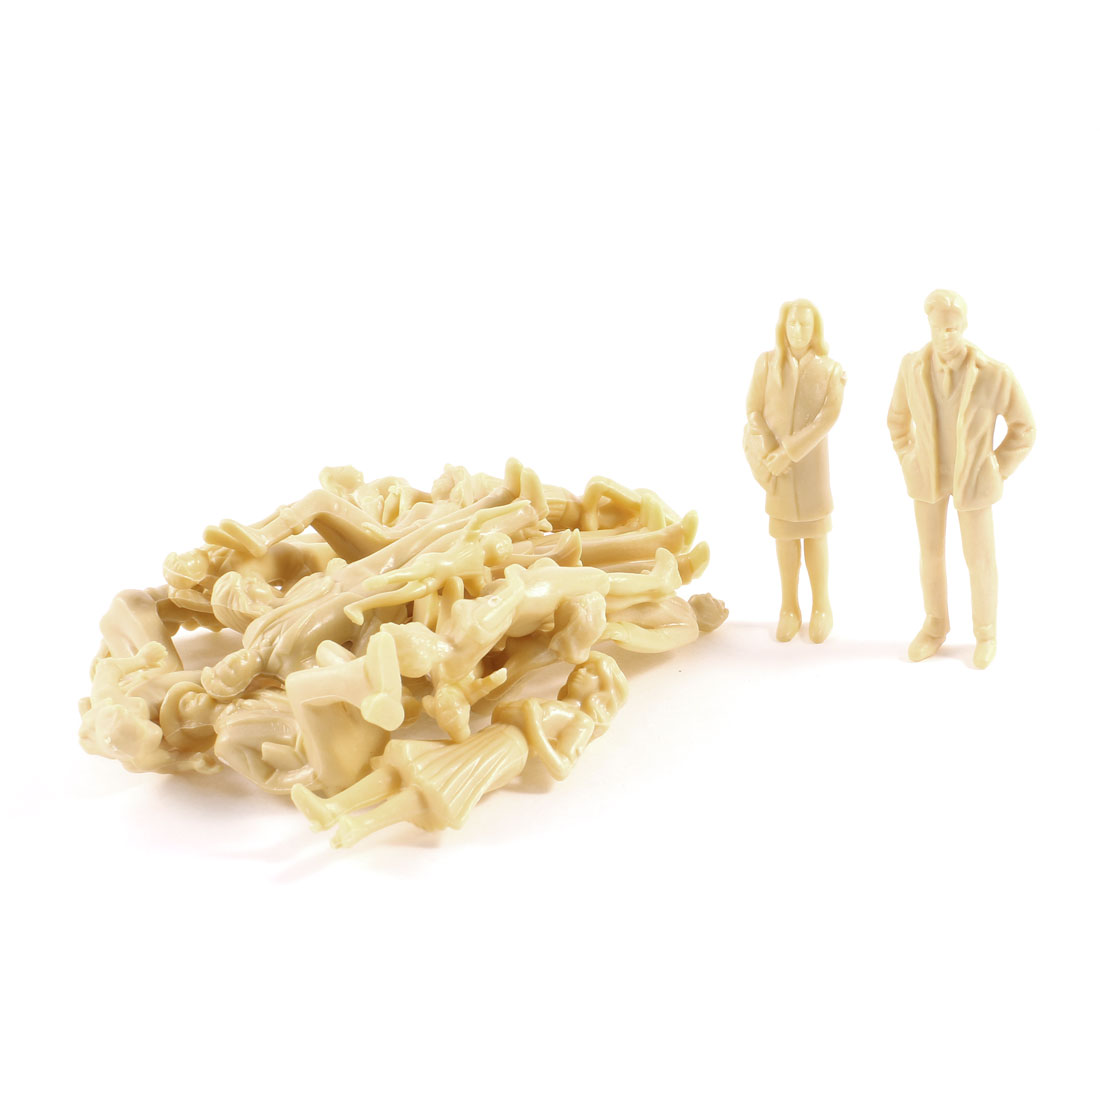 20 PCS Beige Varied Posture Different Clothes People Models Toy